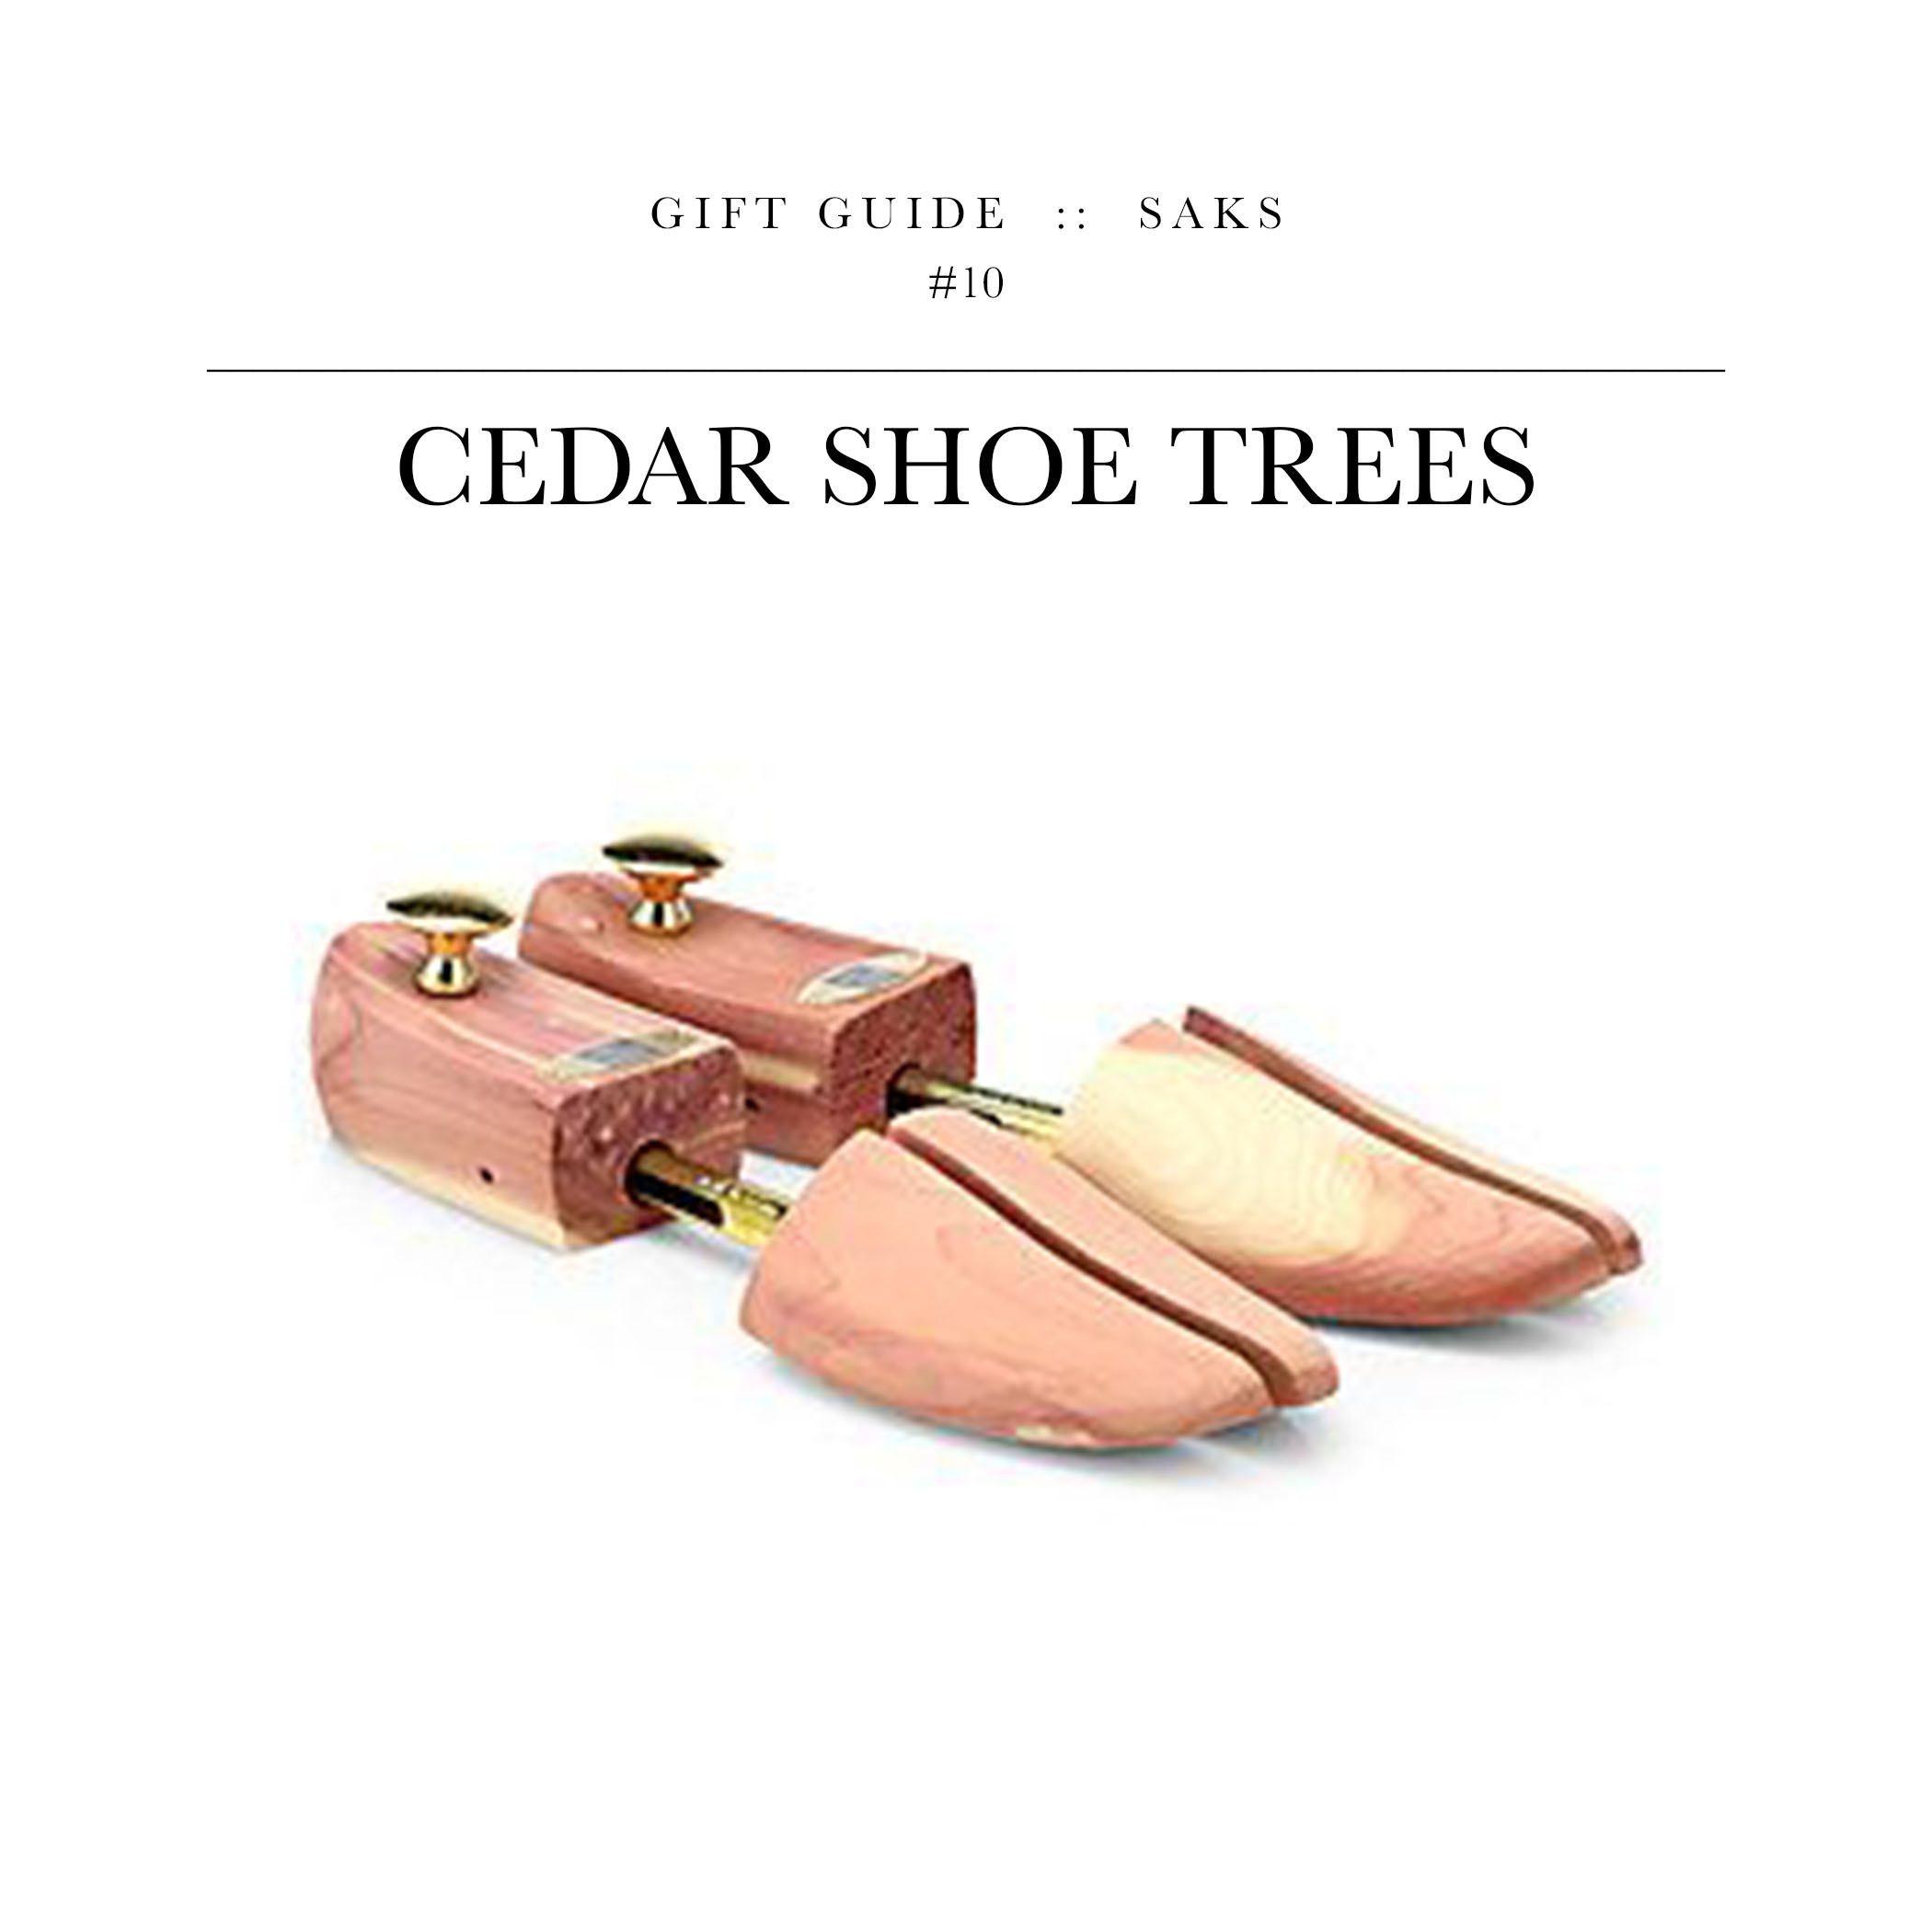 Cedar Shoe Trees via Saks // Cedar shoe trees make a great gift because you can never have too many of them. Feeling extra ambitious? Get his initials burned into the top of the wood.